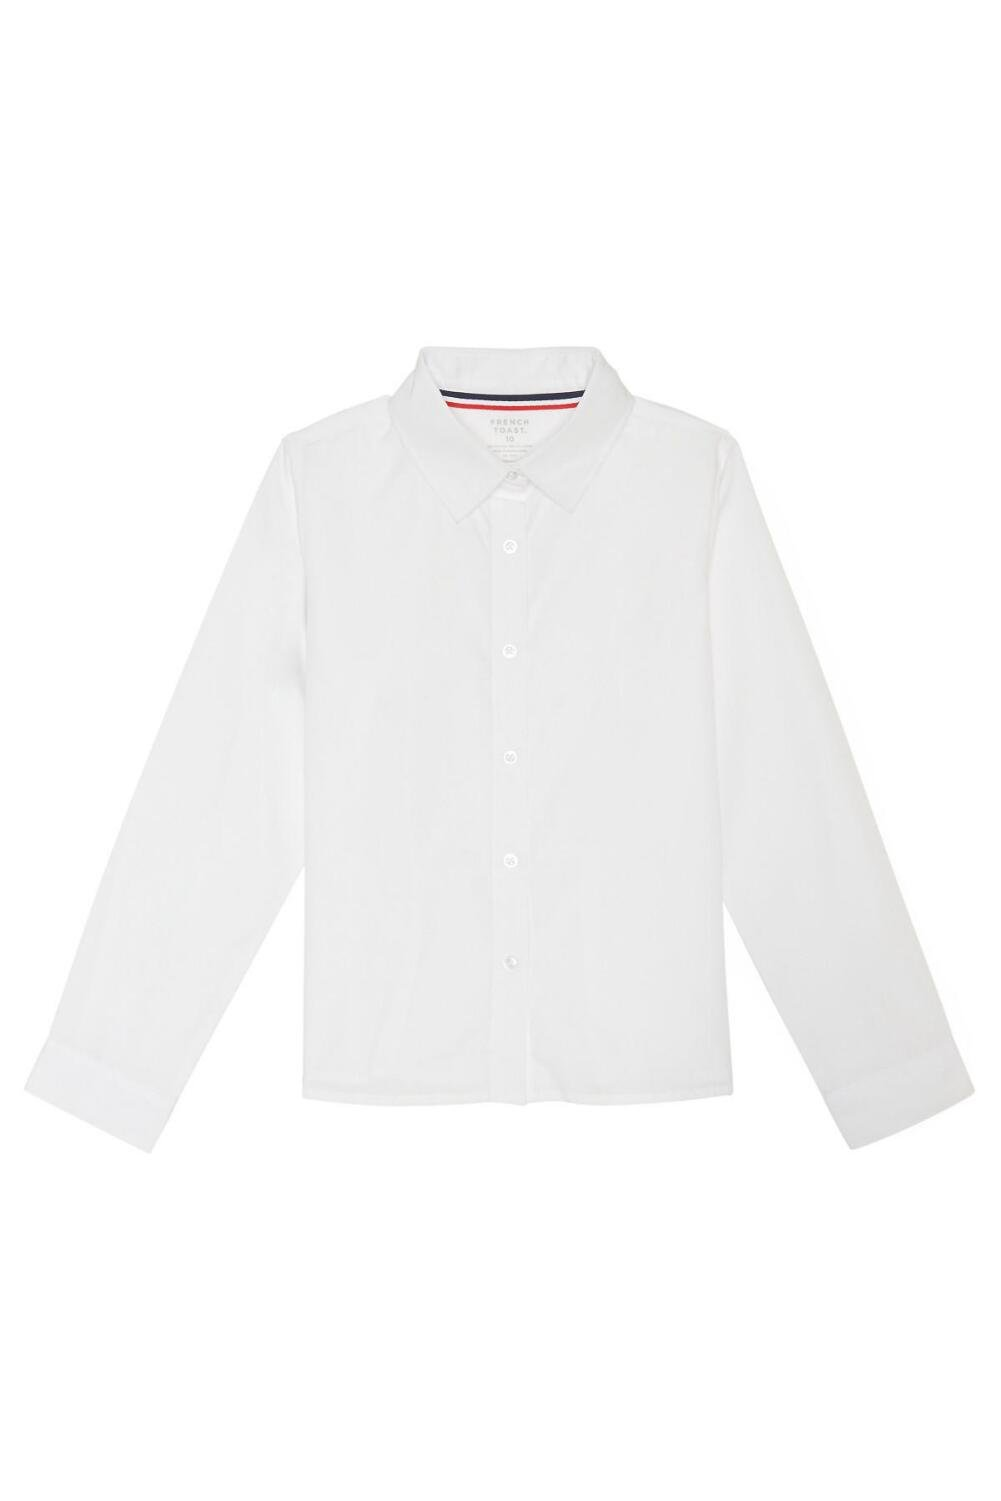 French Toast Big Girls' Long Sleeve Pointed Collar Short, White, 10